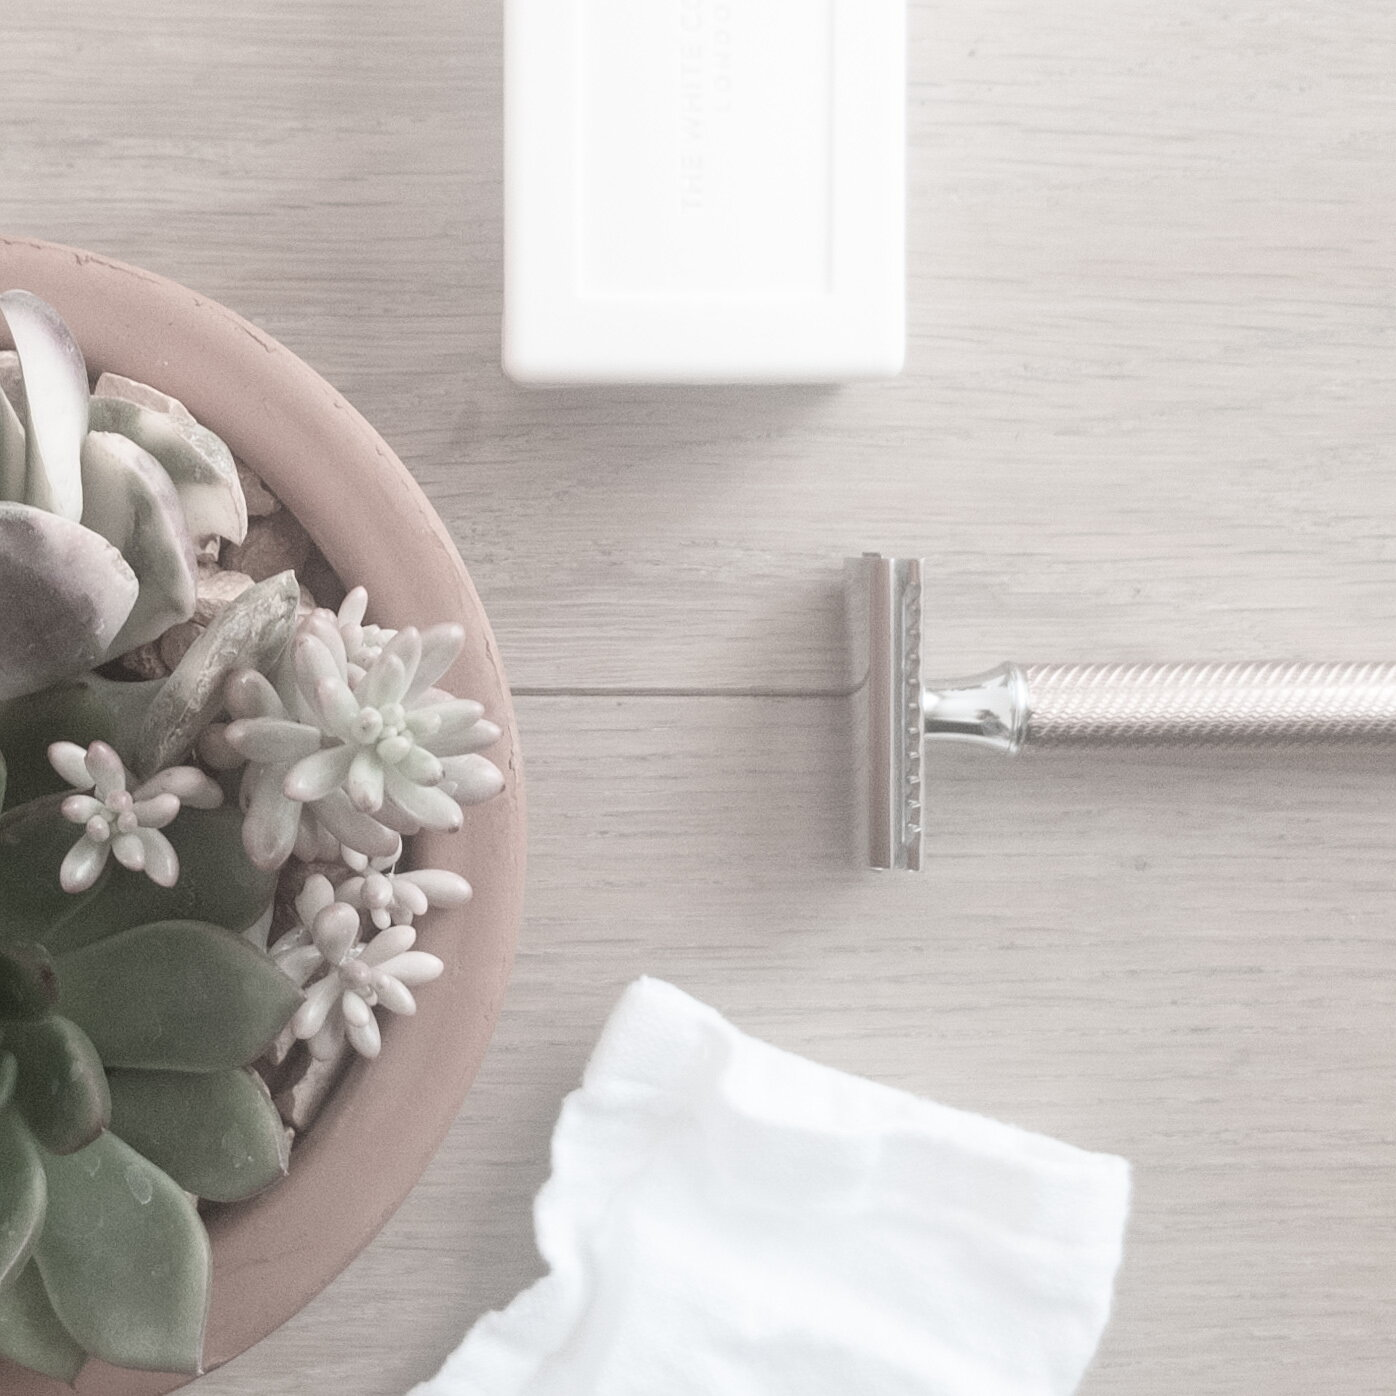 3 Simple Sustainable Beauty Switches